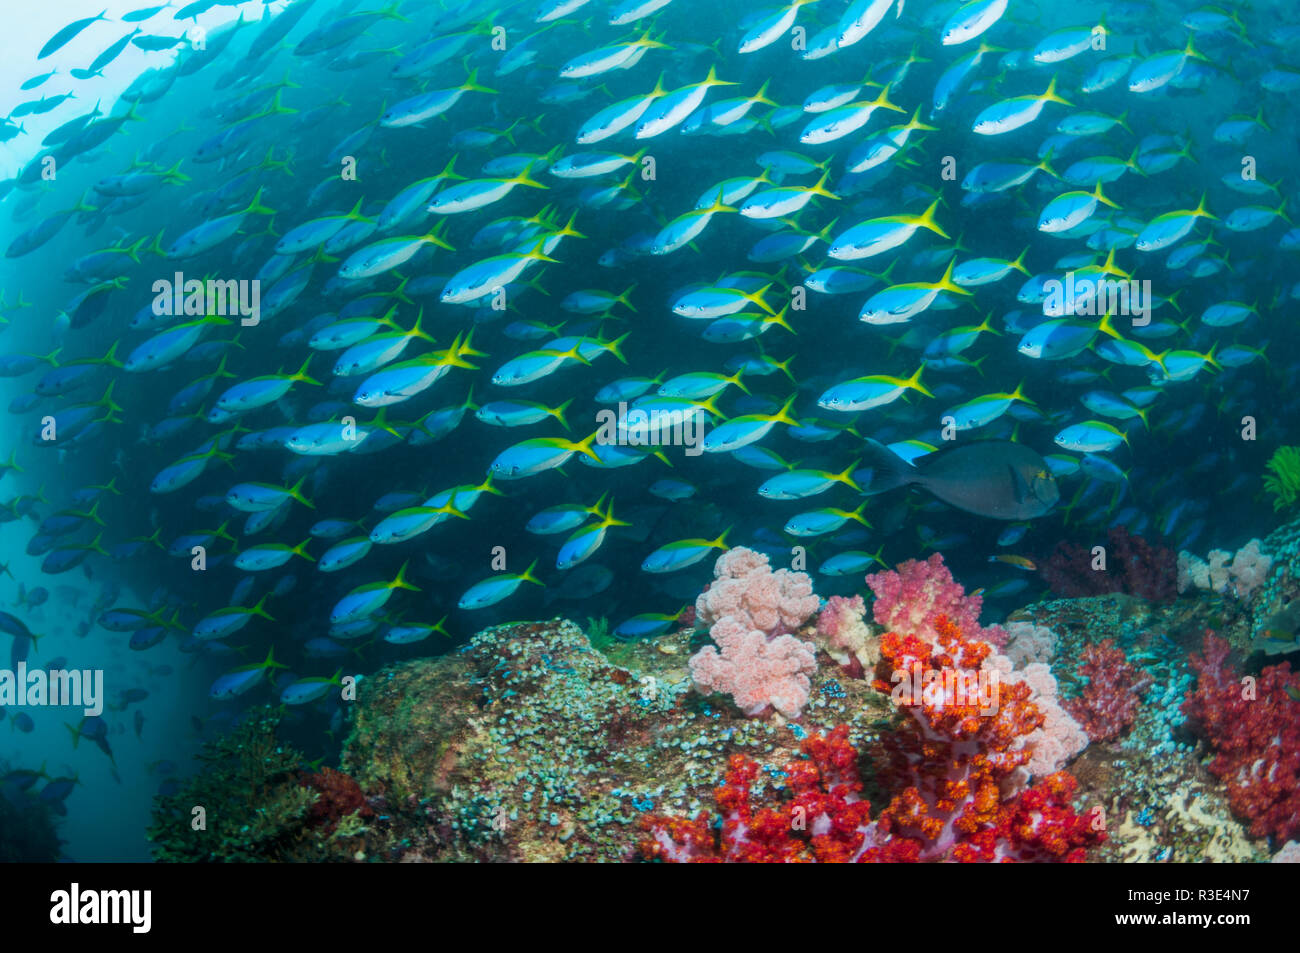 School of Yellowback fusiliers [Ceasio teres] over coral reef with soft corals.  West Papua, Indonesia. Stock Photo